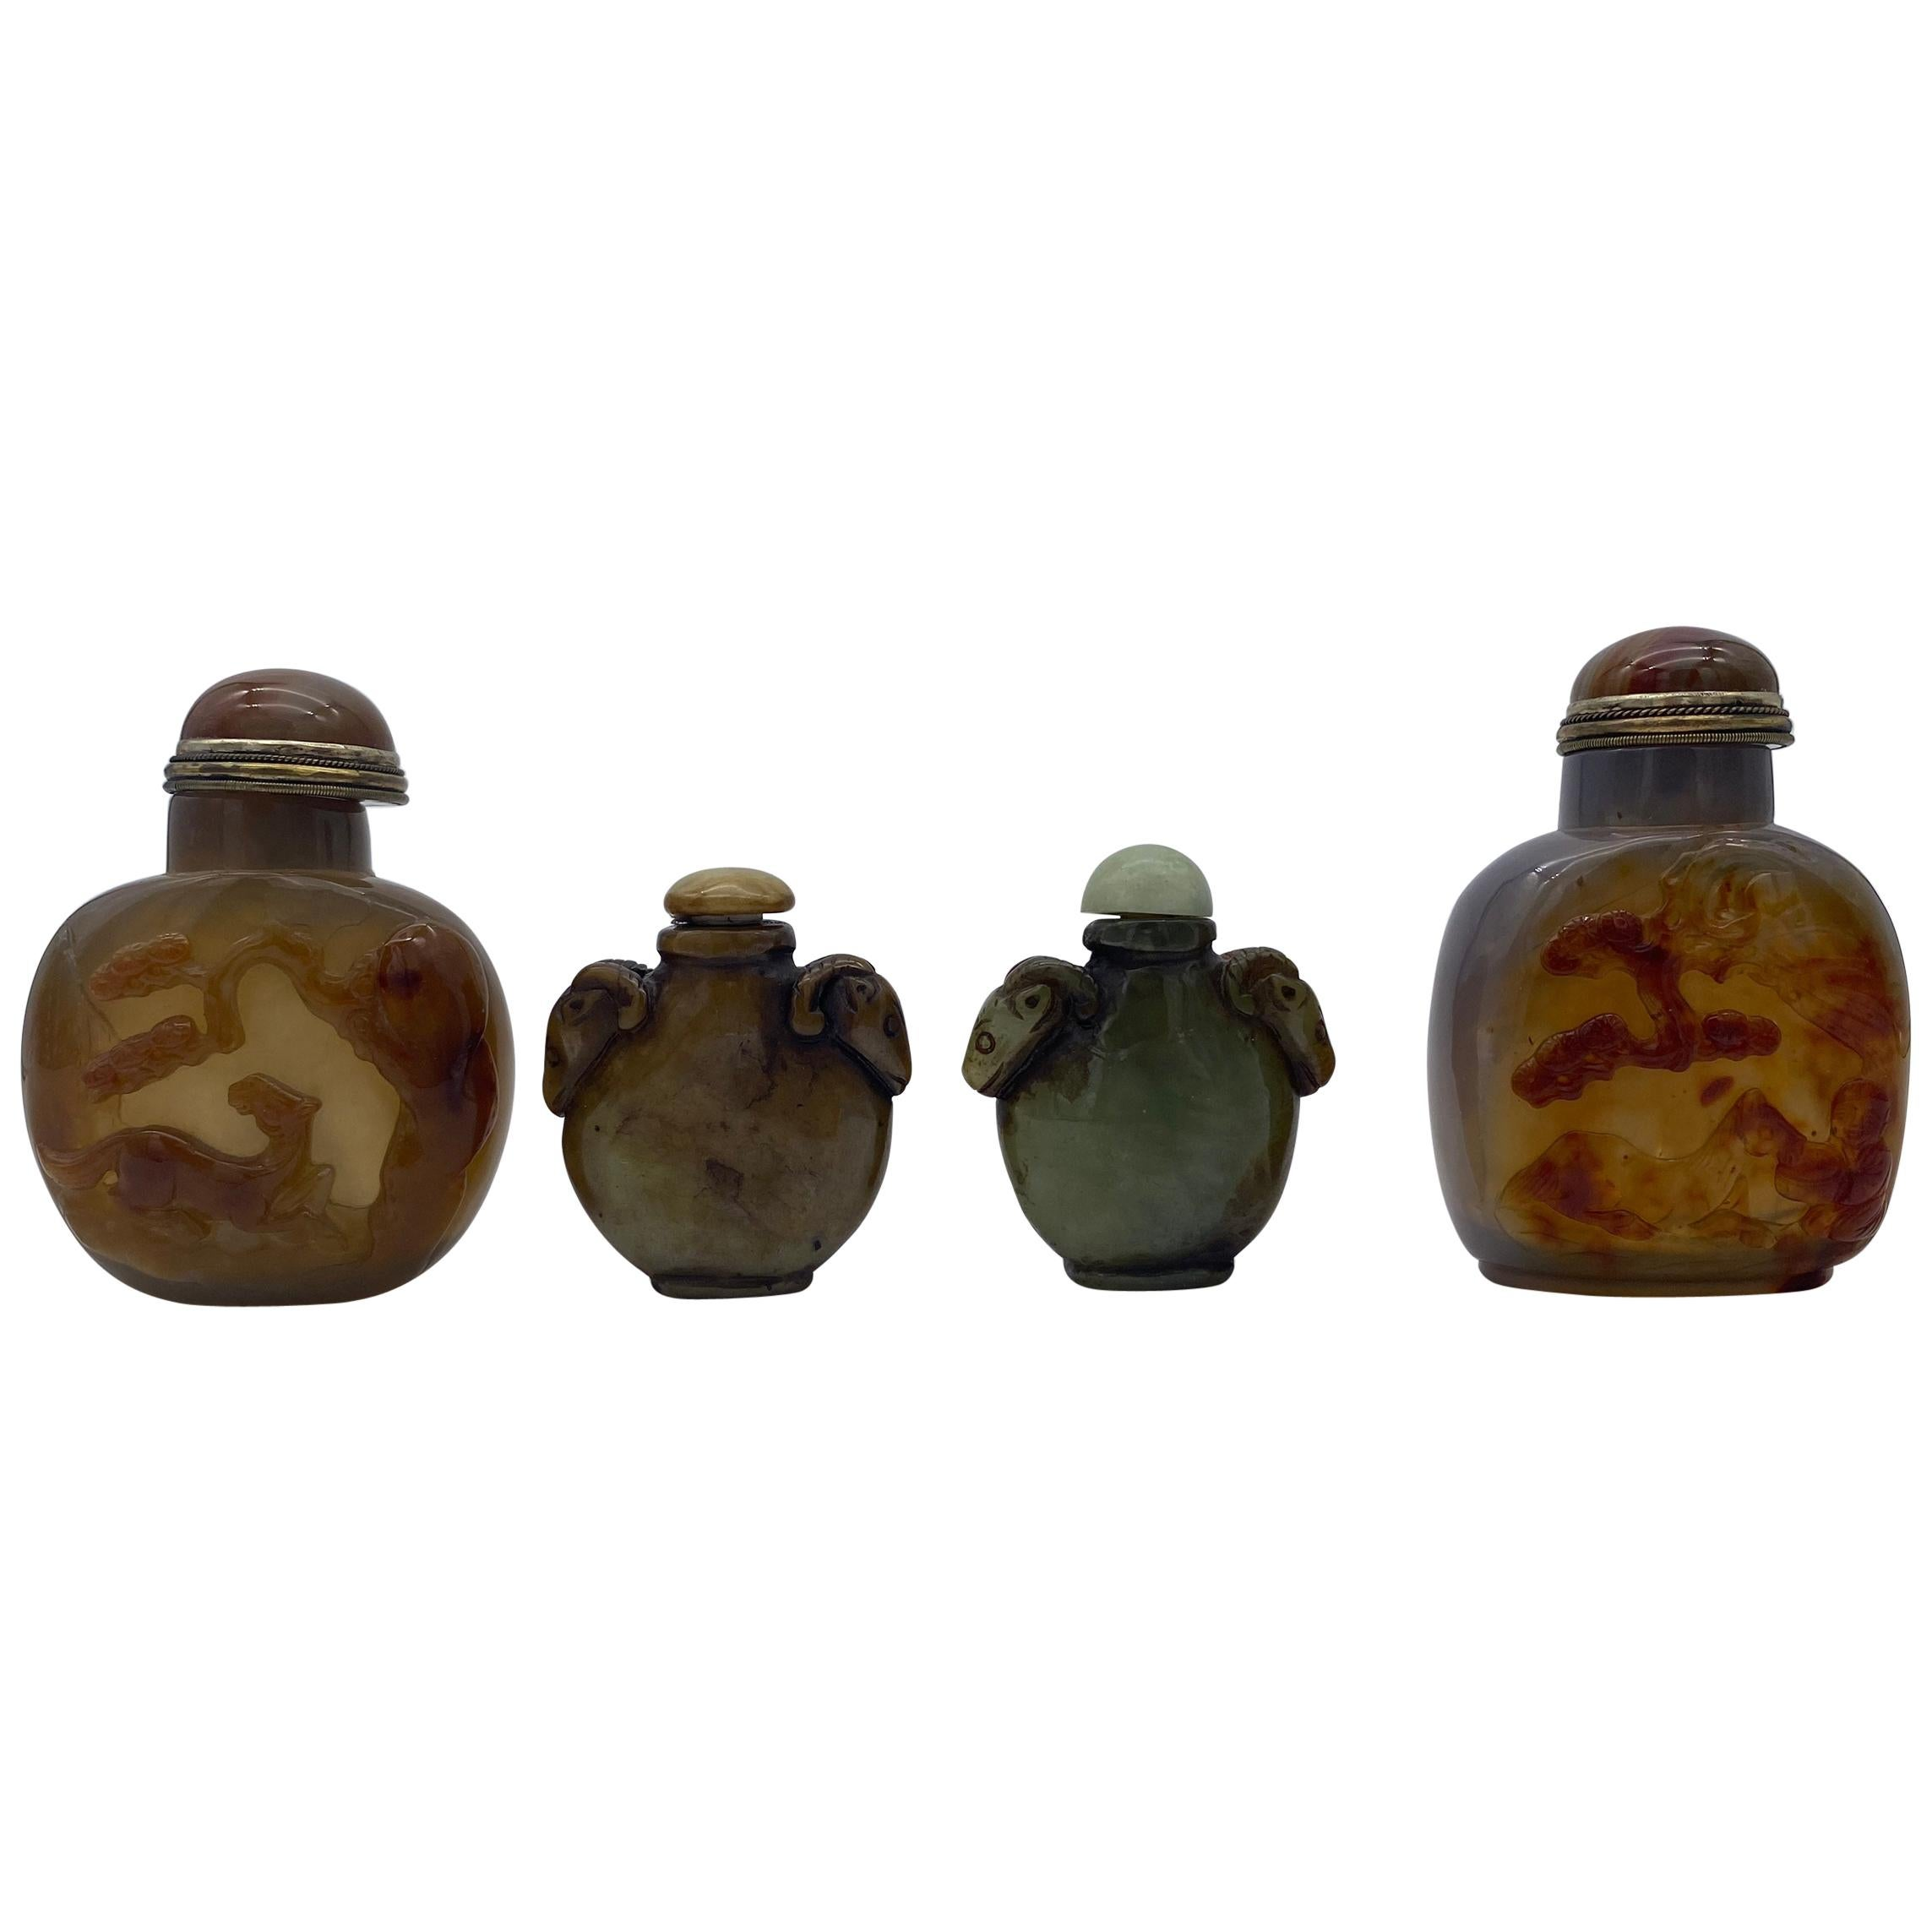 Early 20th Century Chinese Agate and Jade Snuff Bottles